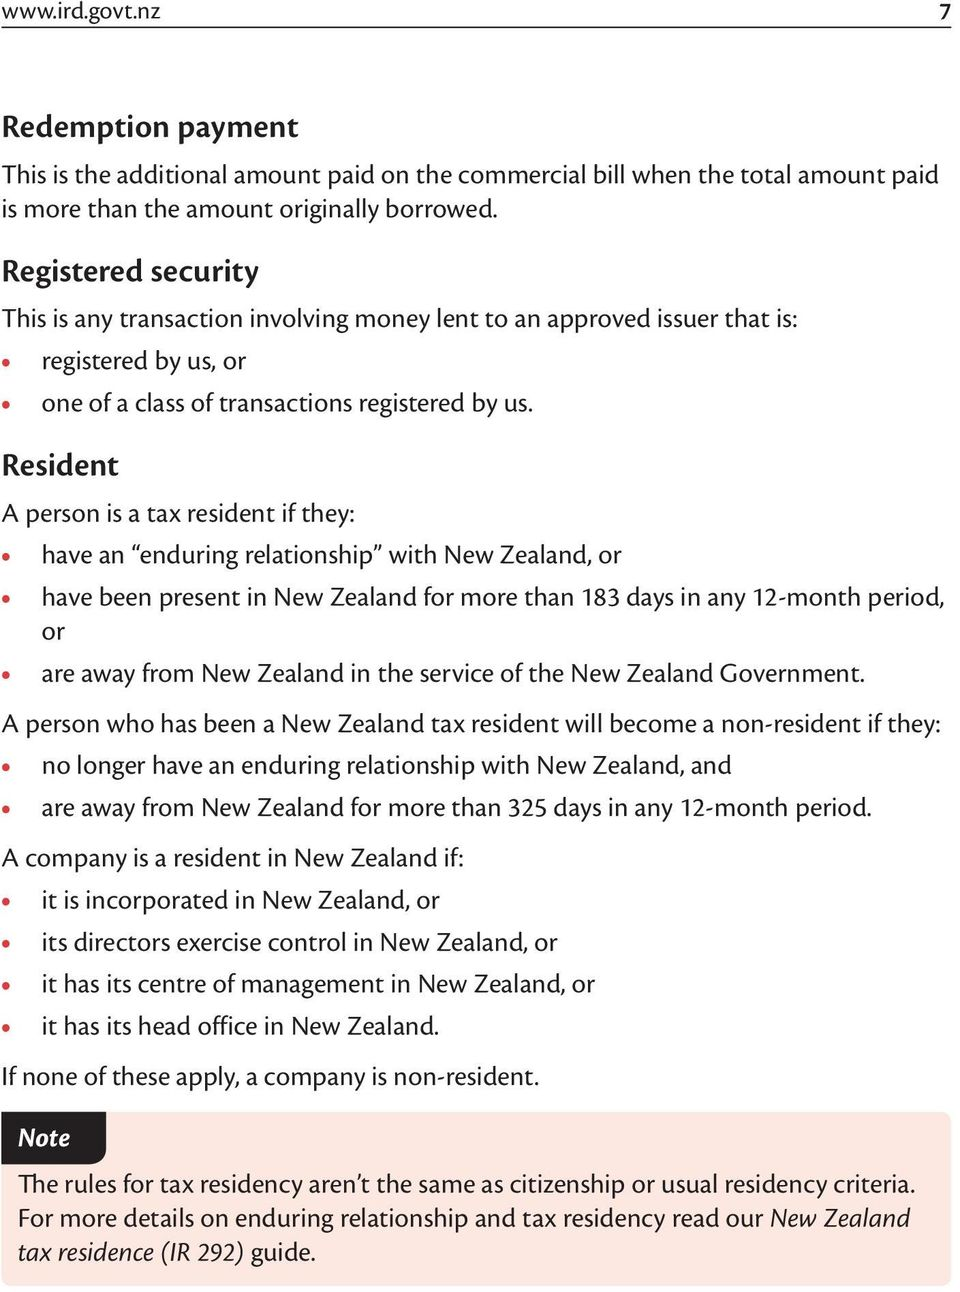 Resident A person is a tax resident if they: have an enduring relationship with New Zealand, or have been present in New Zealand for more than 183 days in any 12-month period, or are away from New